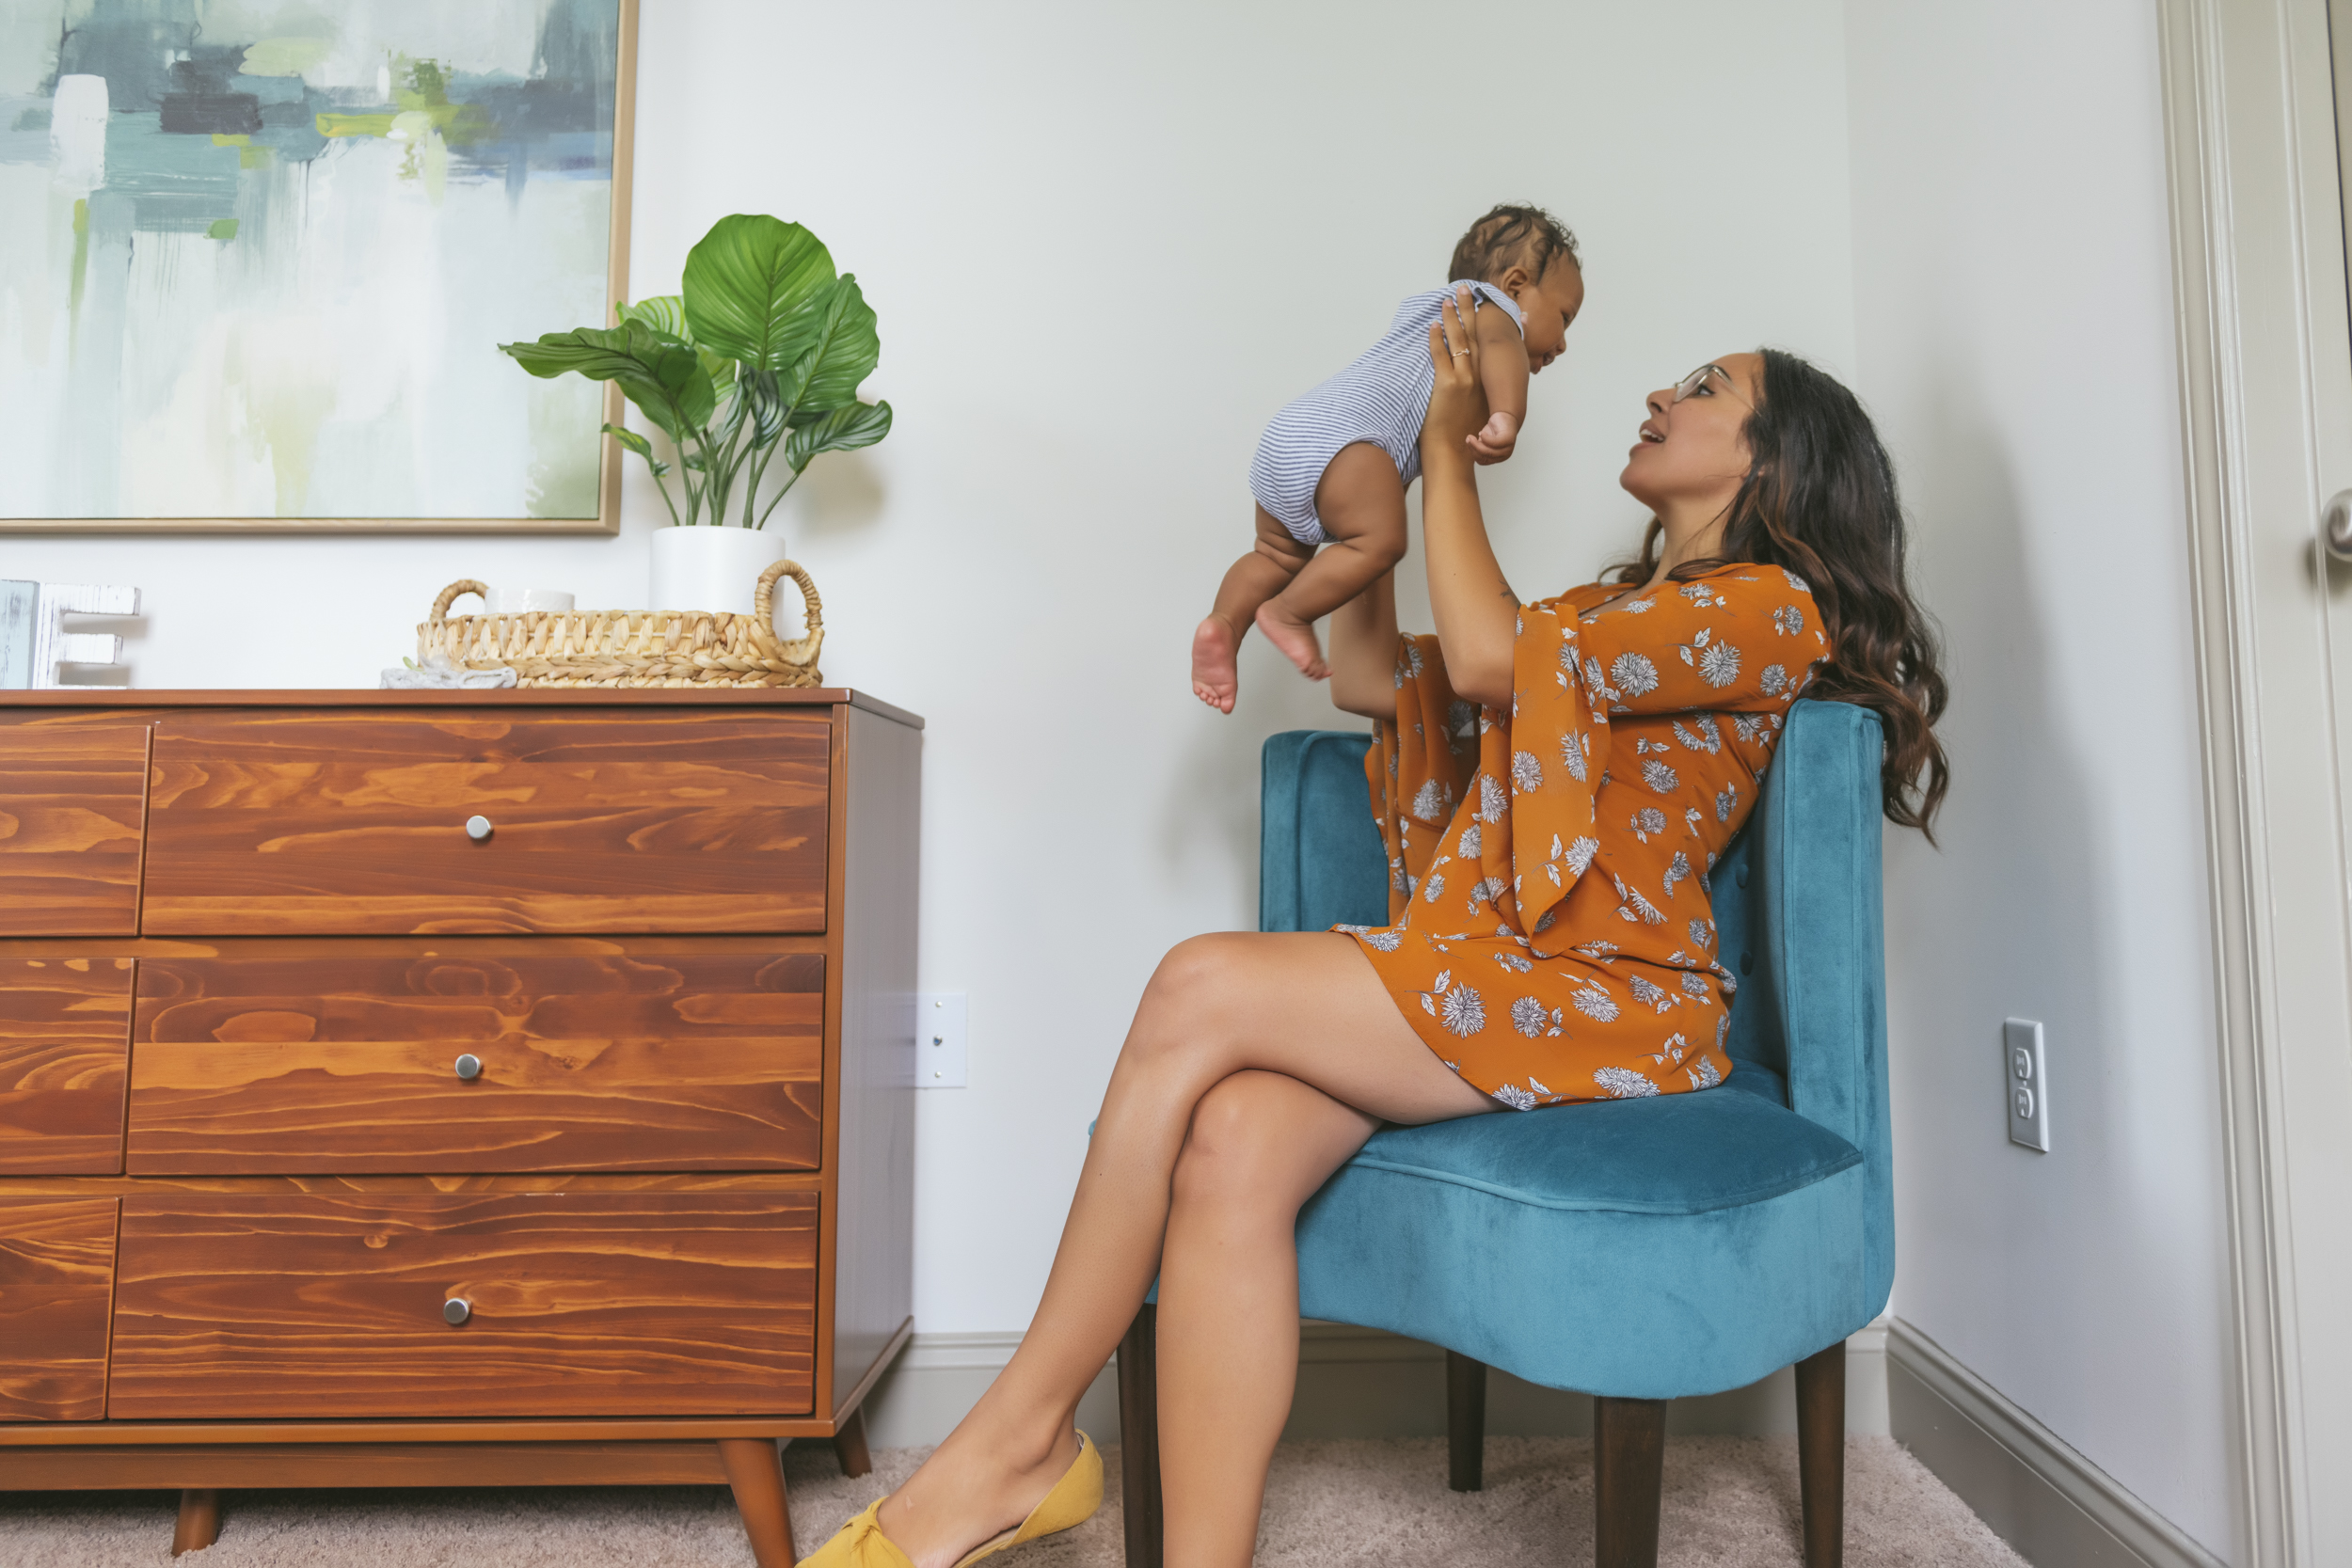 evolve blog refresh your space girl with baby houseplant